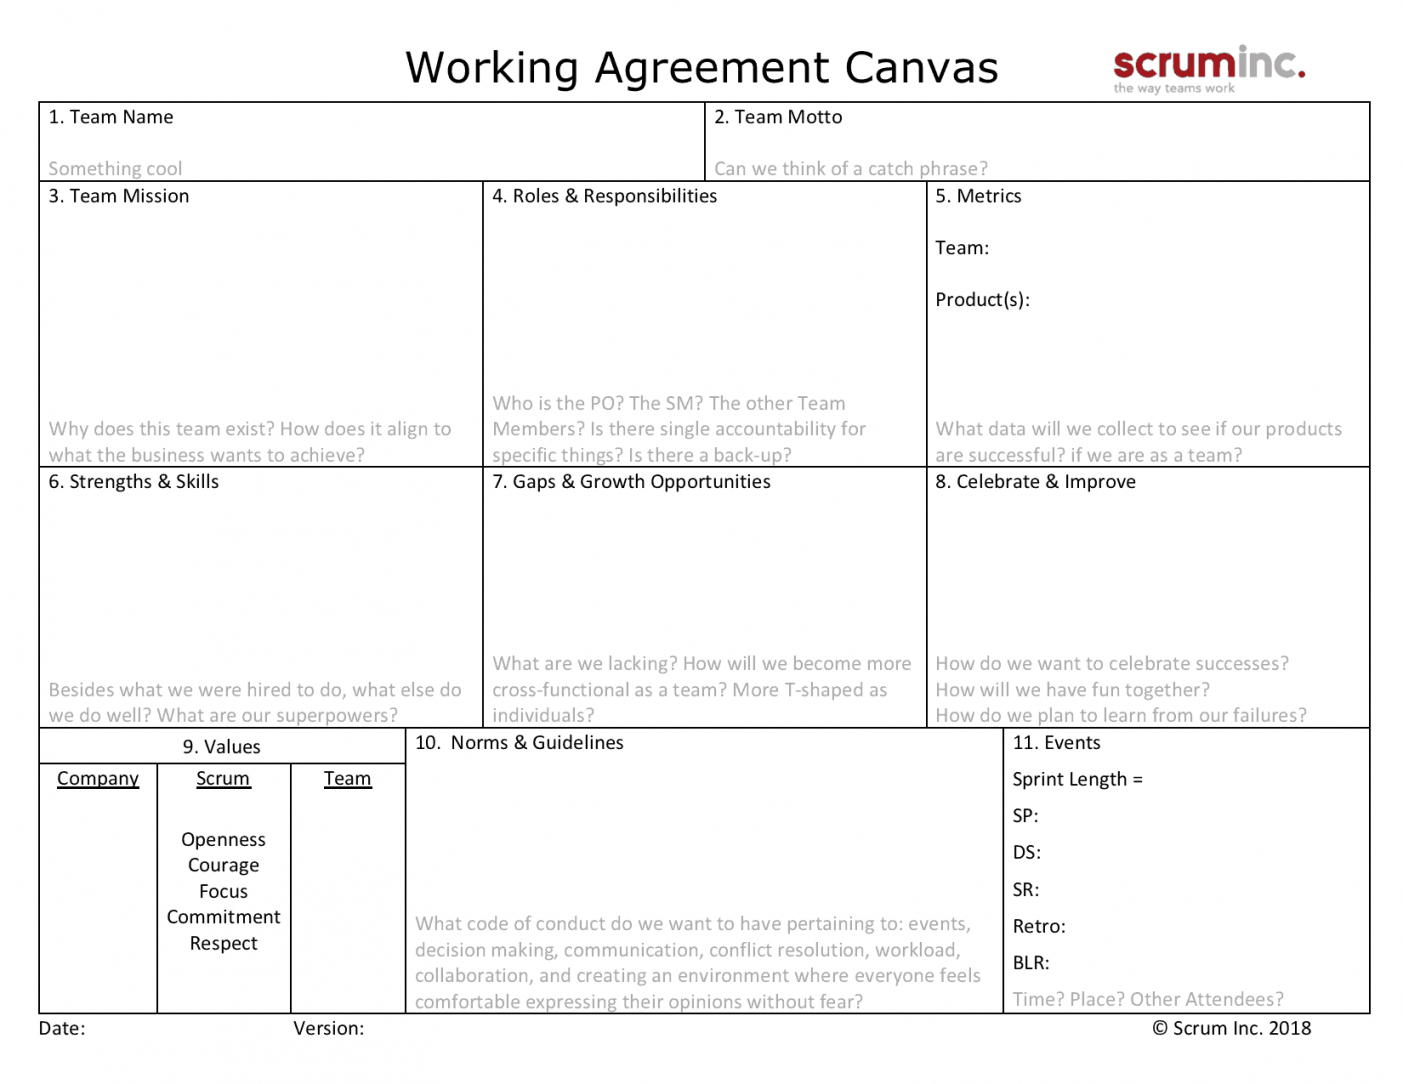 printable team working agreement canvas  scrum inc scrum working agreement template pdf